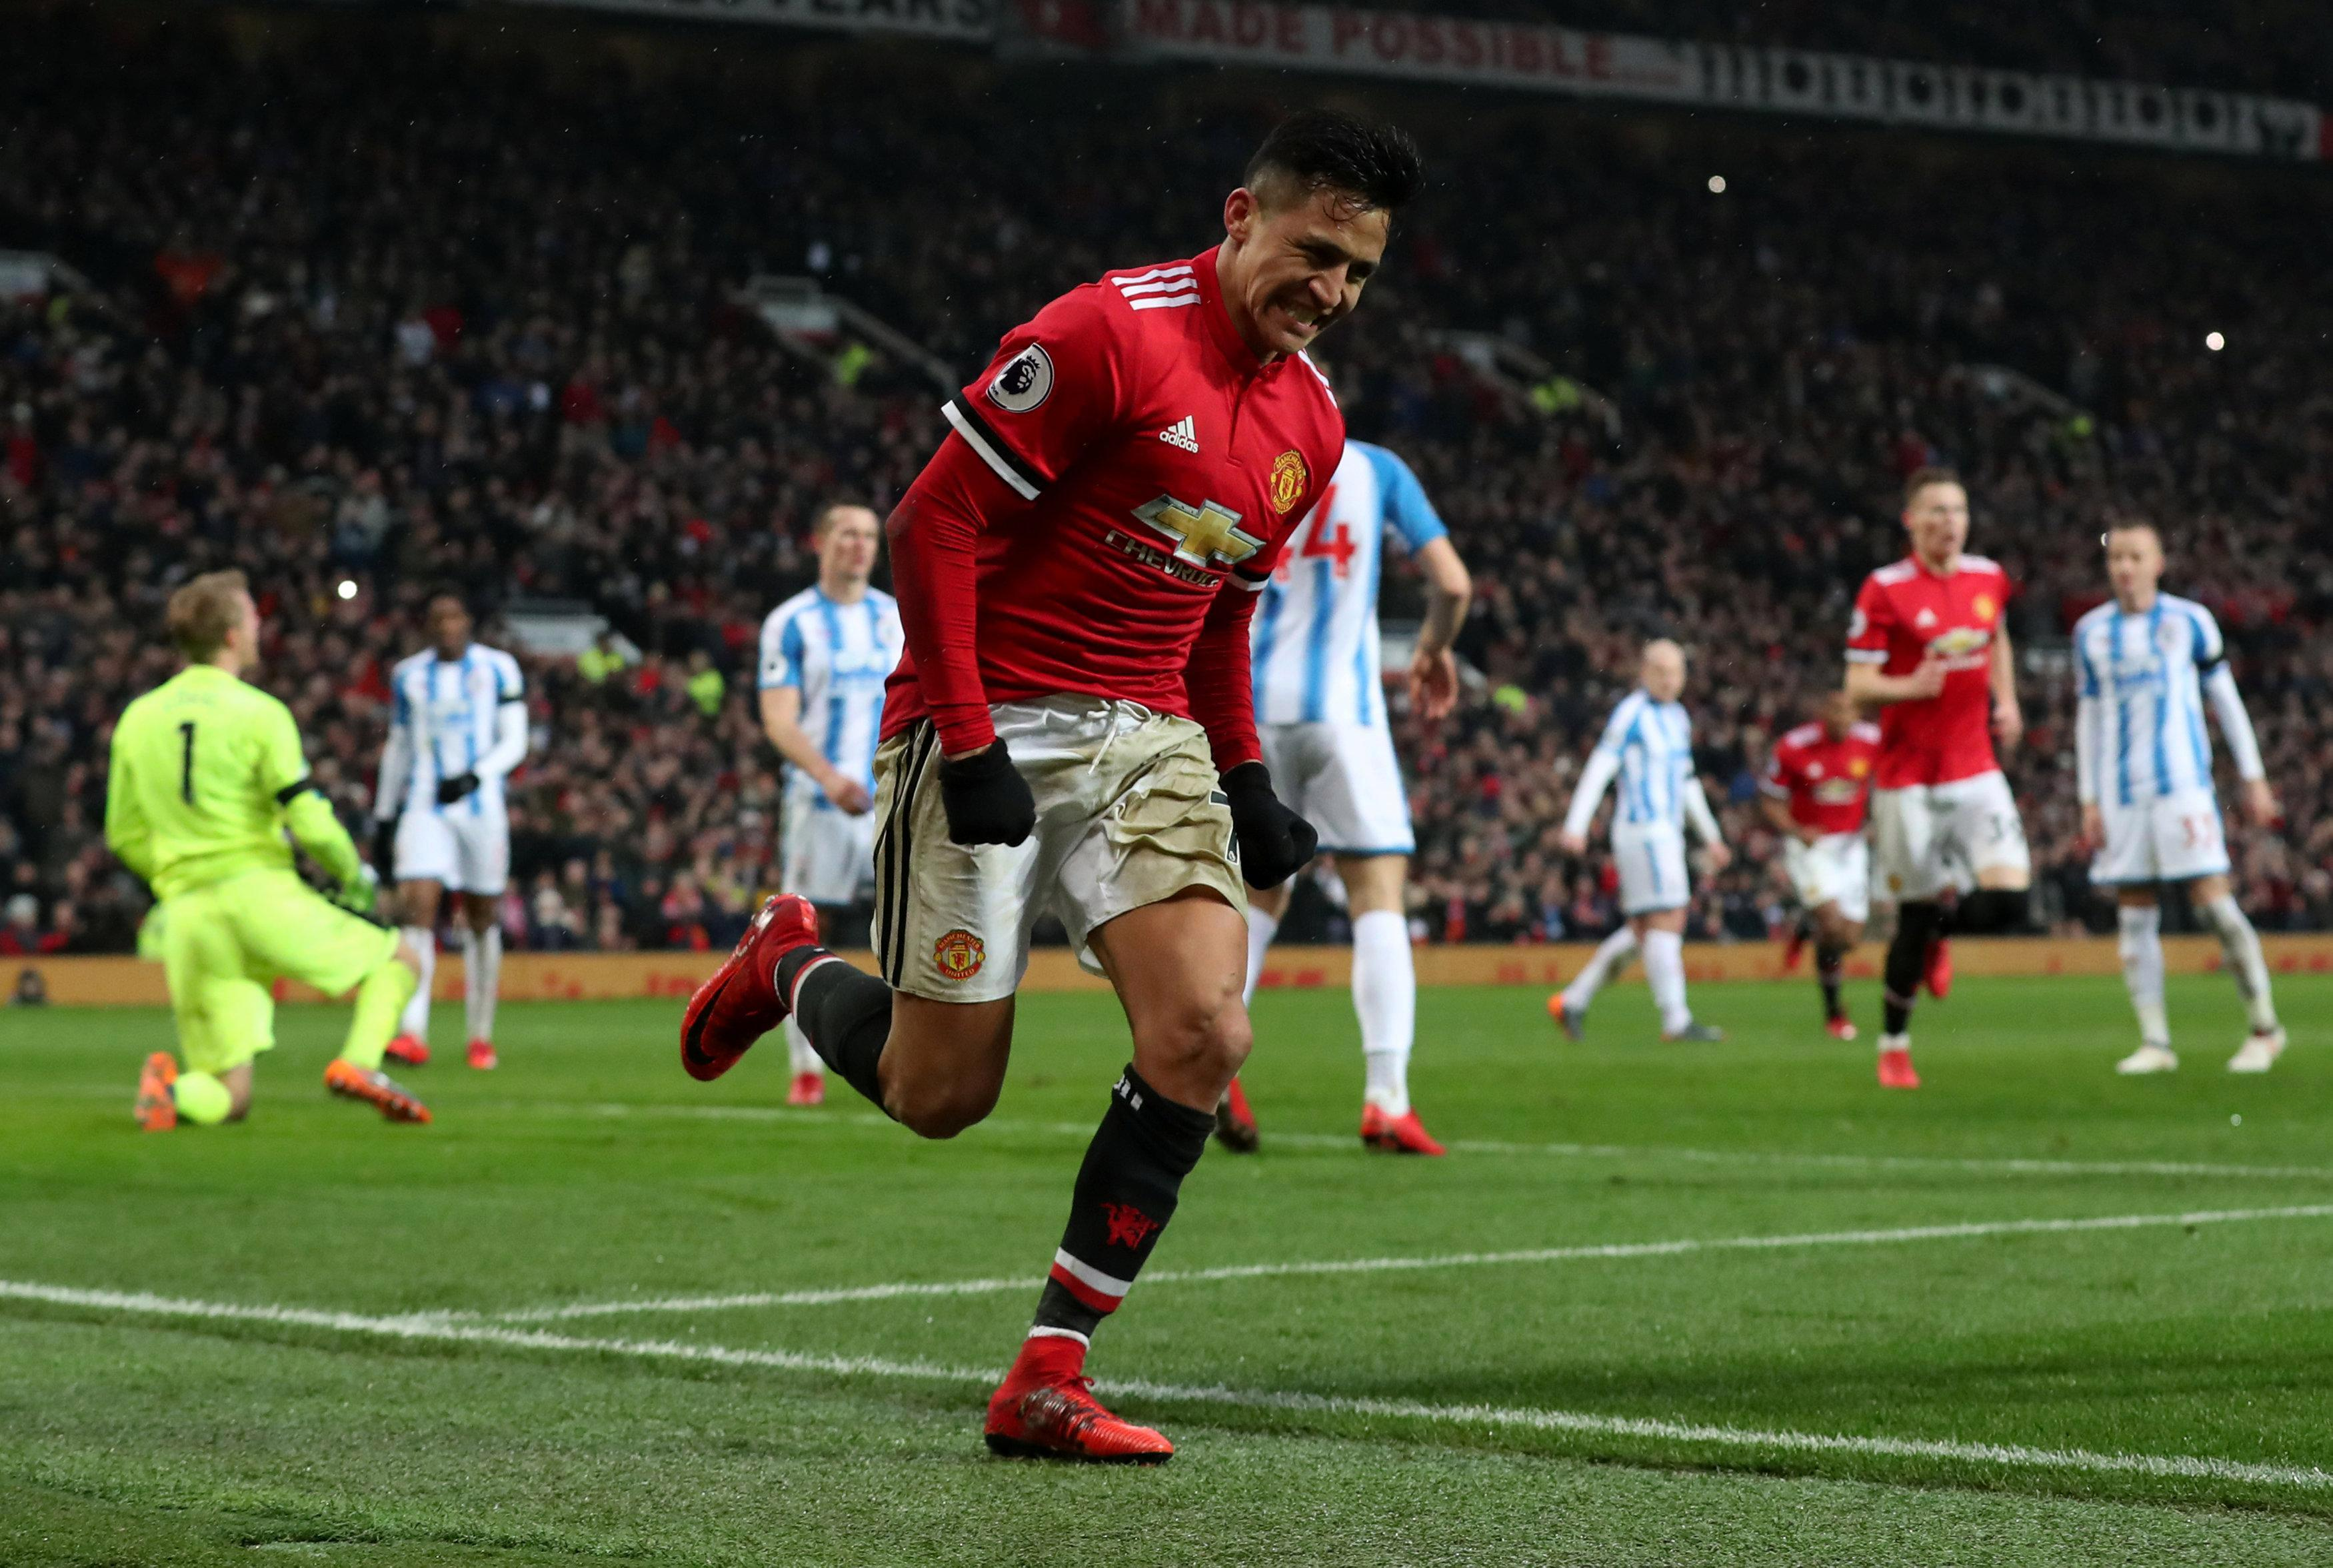 Sanchez grabbed his first United goal from a rebounded penalty